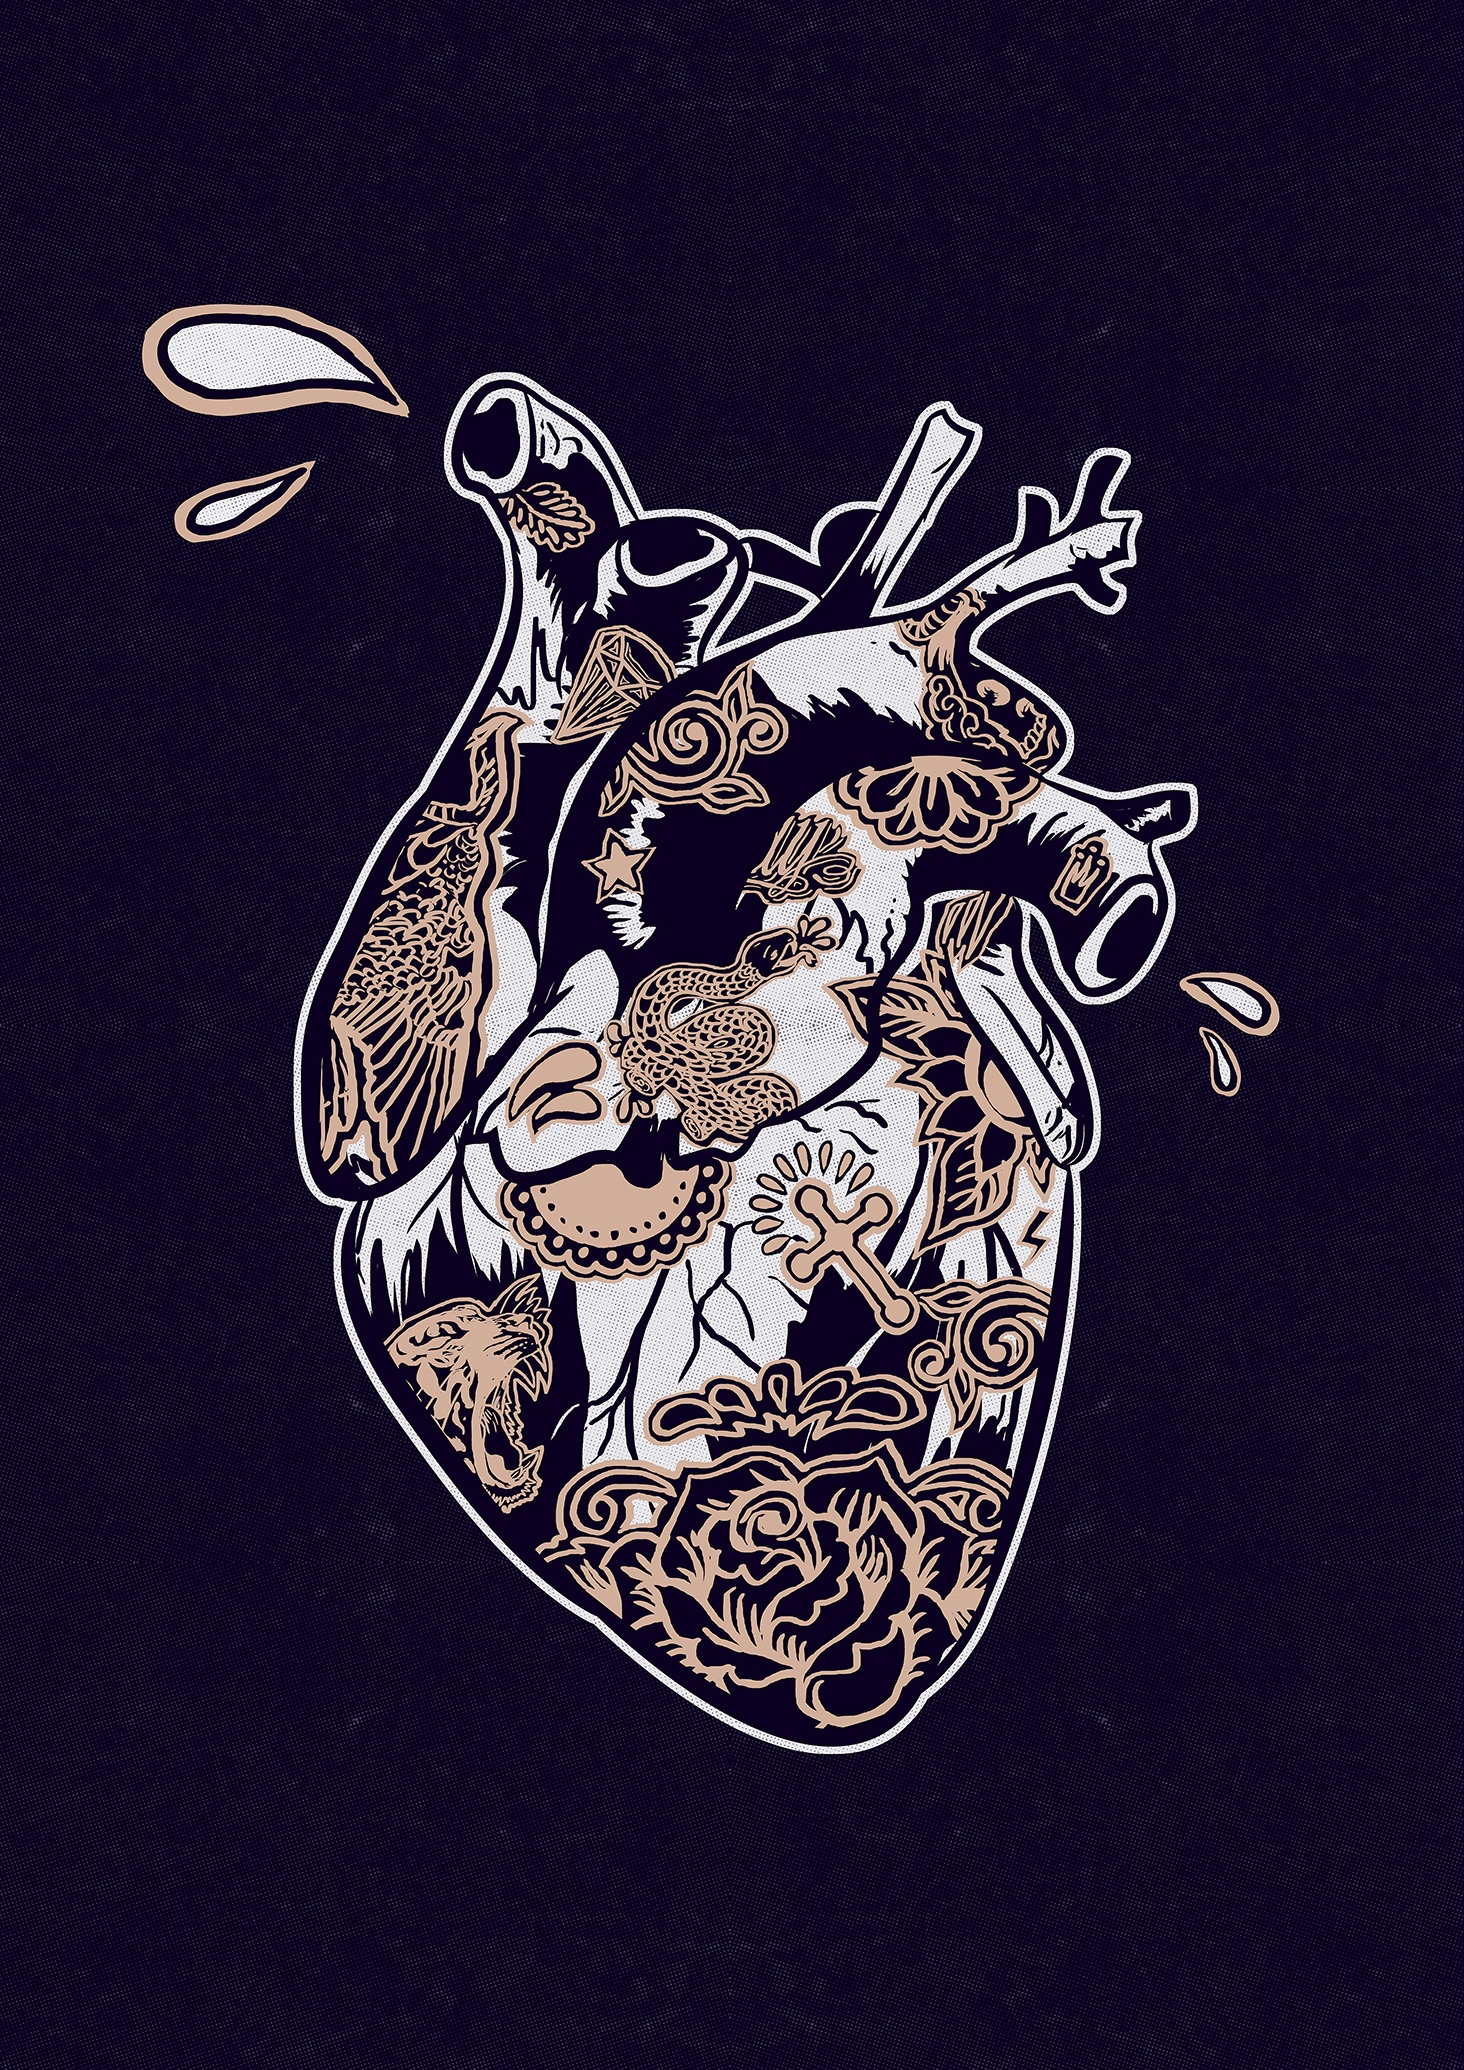 Black heart - illustration, justblack - justblack | ello